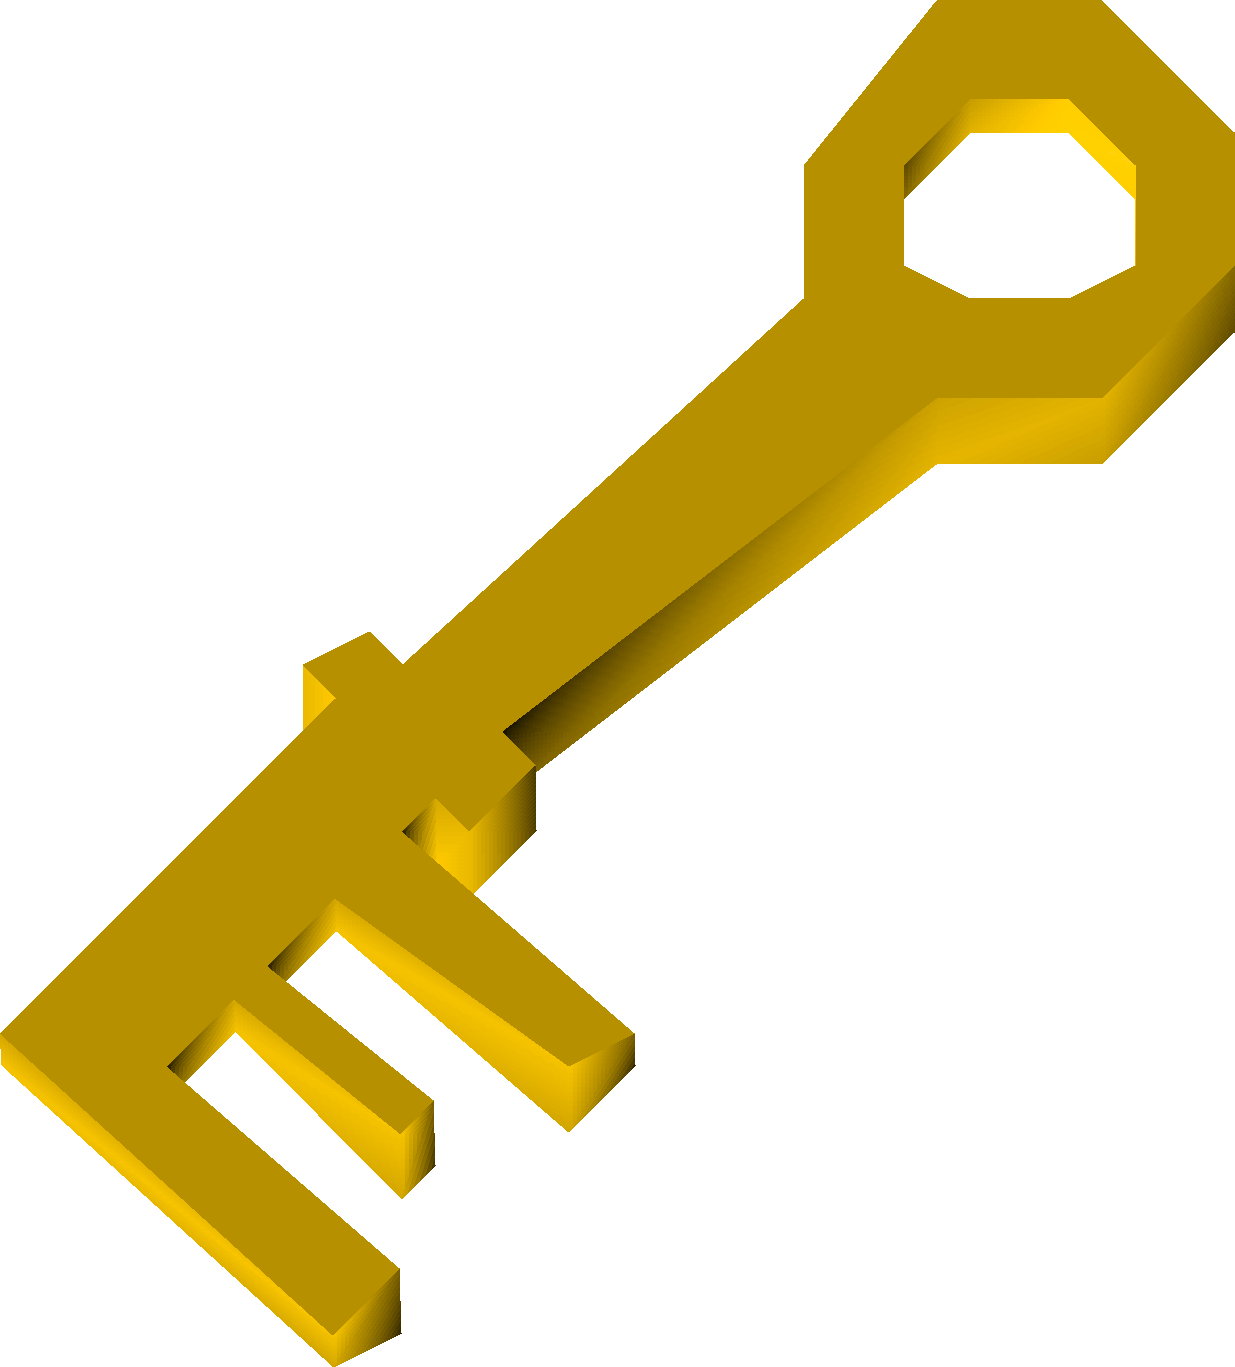 File:Tarnished key detail.png